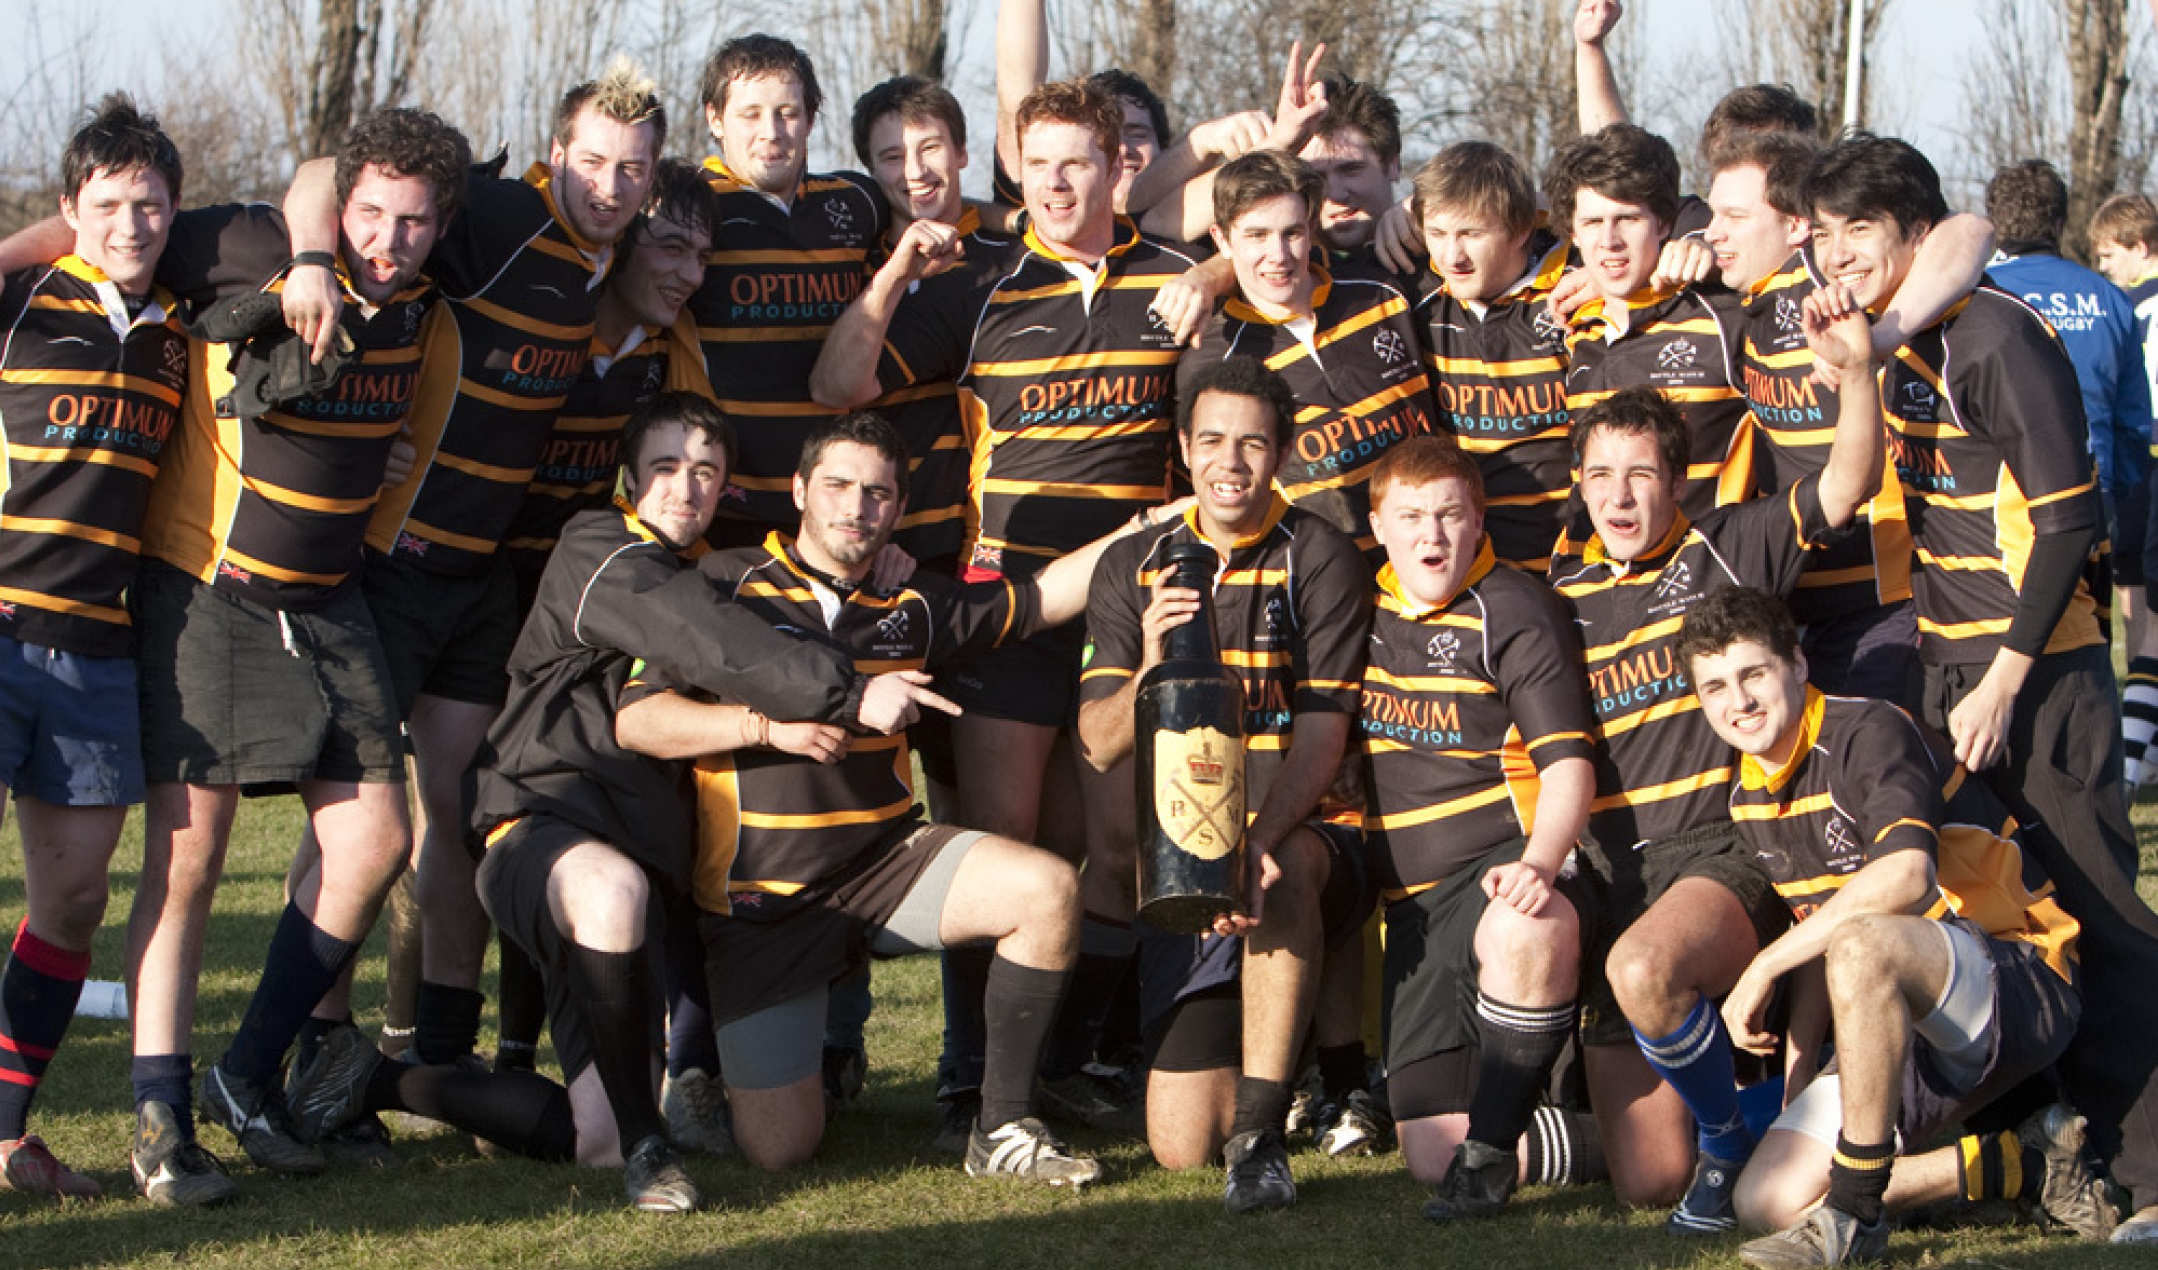 Camborne school of mines rugby